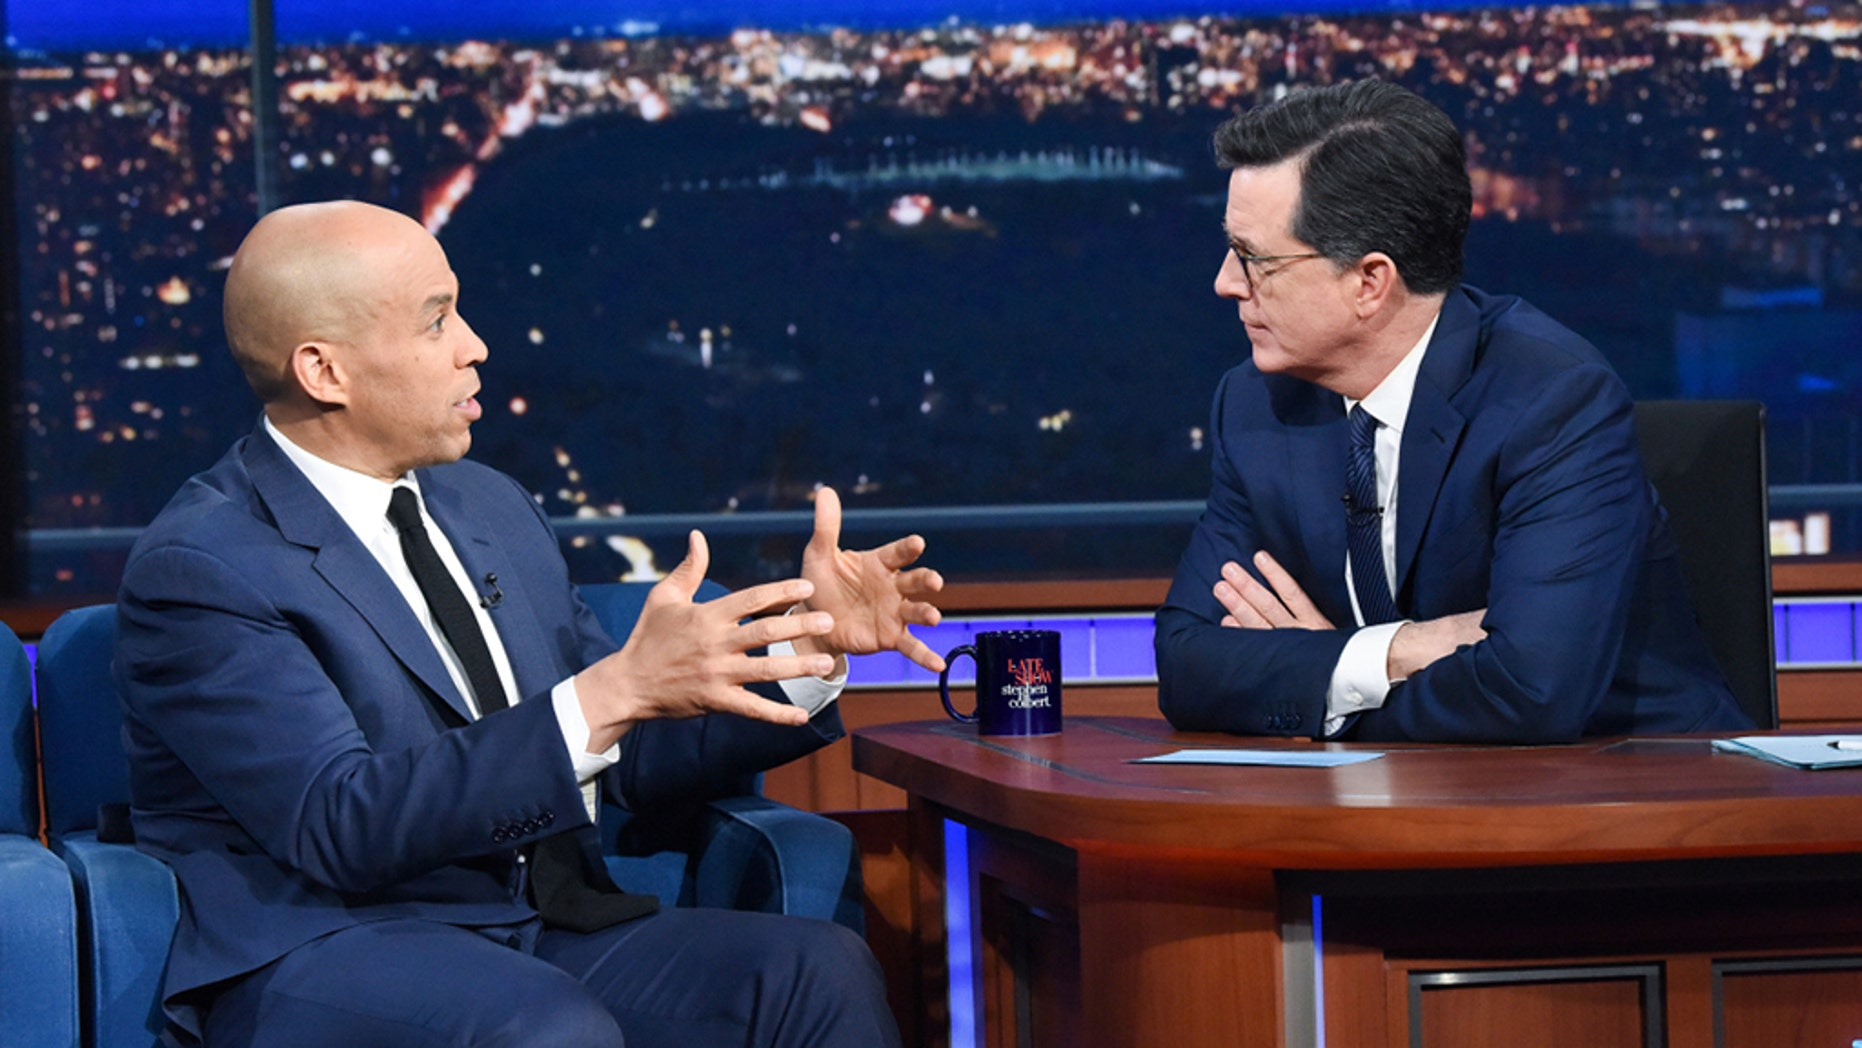 The Late Show with Stephen Colbert and guest Senator Cory Booker during Friday's March 8, 2019 show.